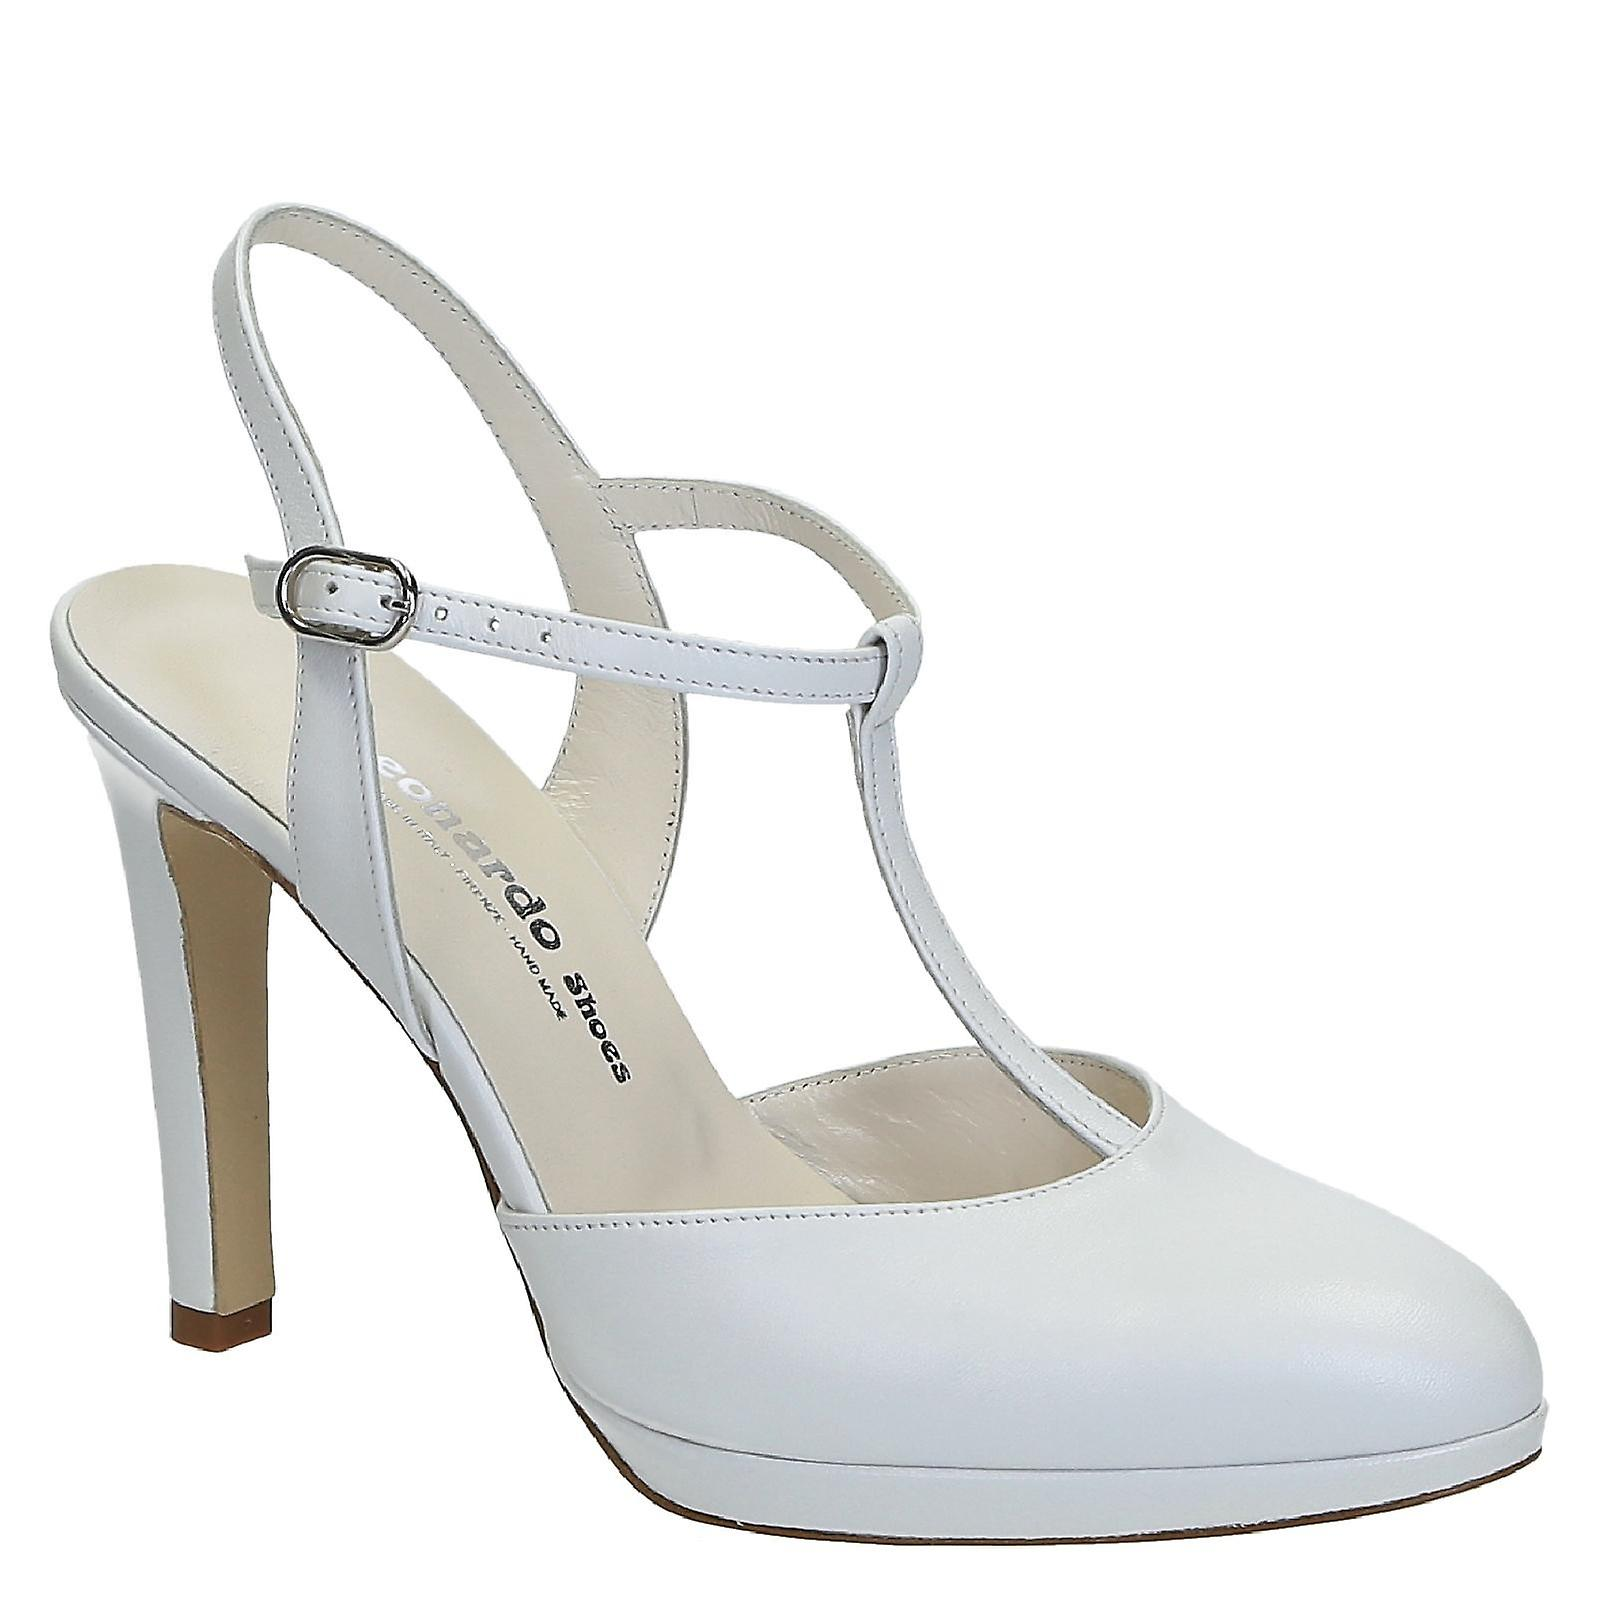 White leather bride t-bar heeled sandals with platform wPZFN